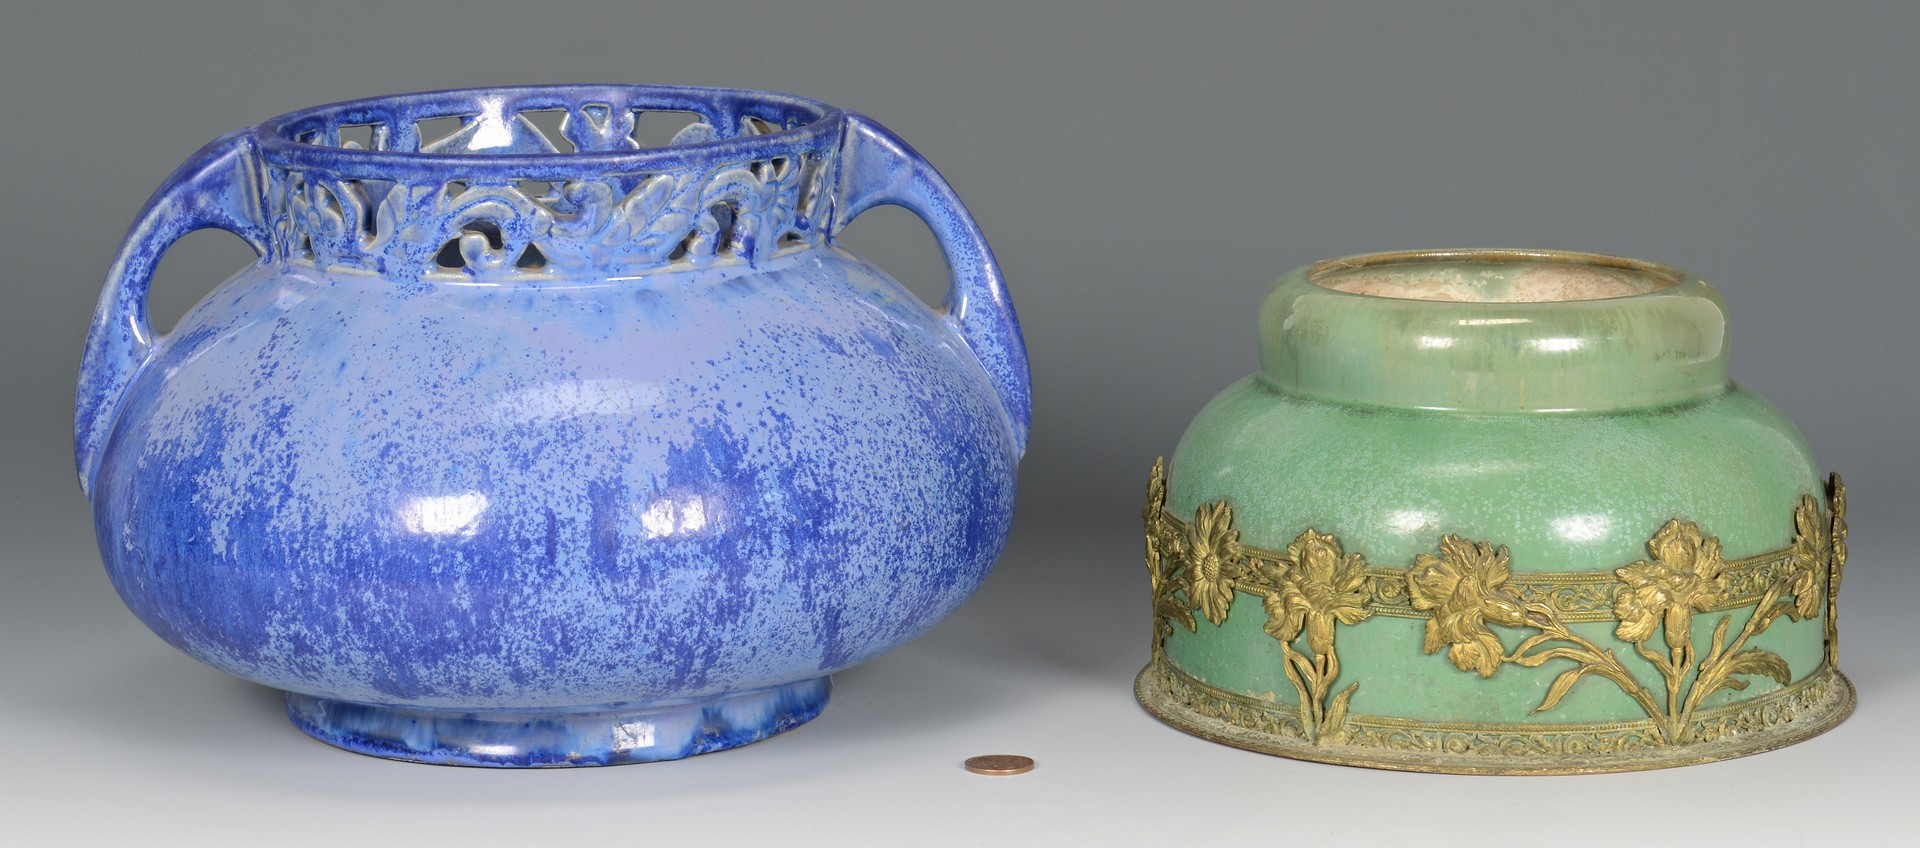 Lot 740: Fulper and Weller Art Pottery